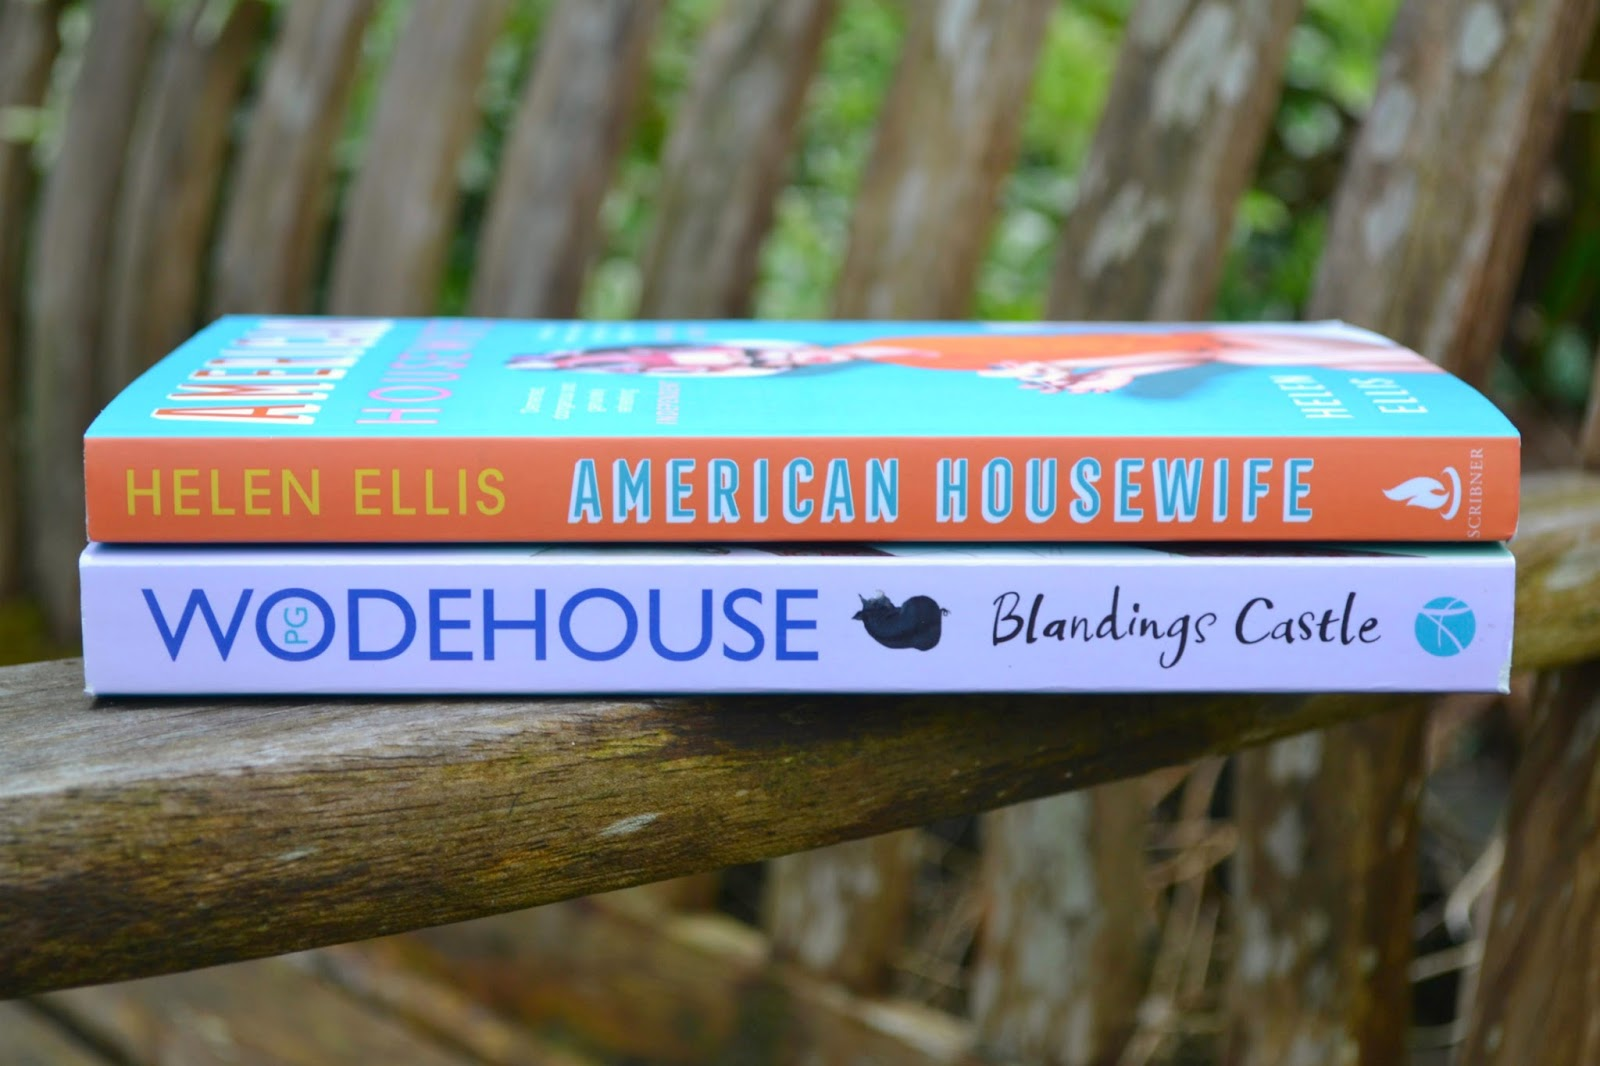 American Housewife by Helen Ellis and Blandings Castle.. And Elsewhere by P. G. Wodehouse